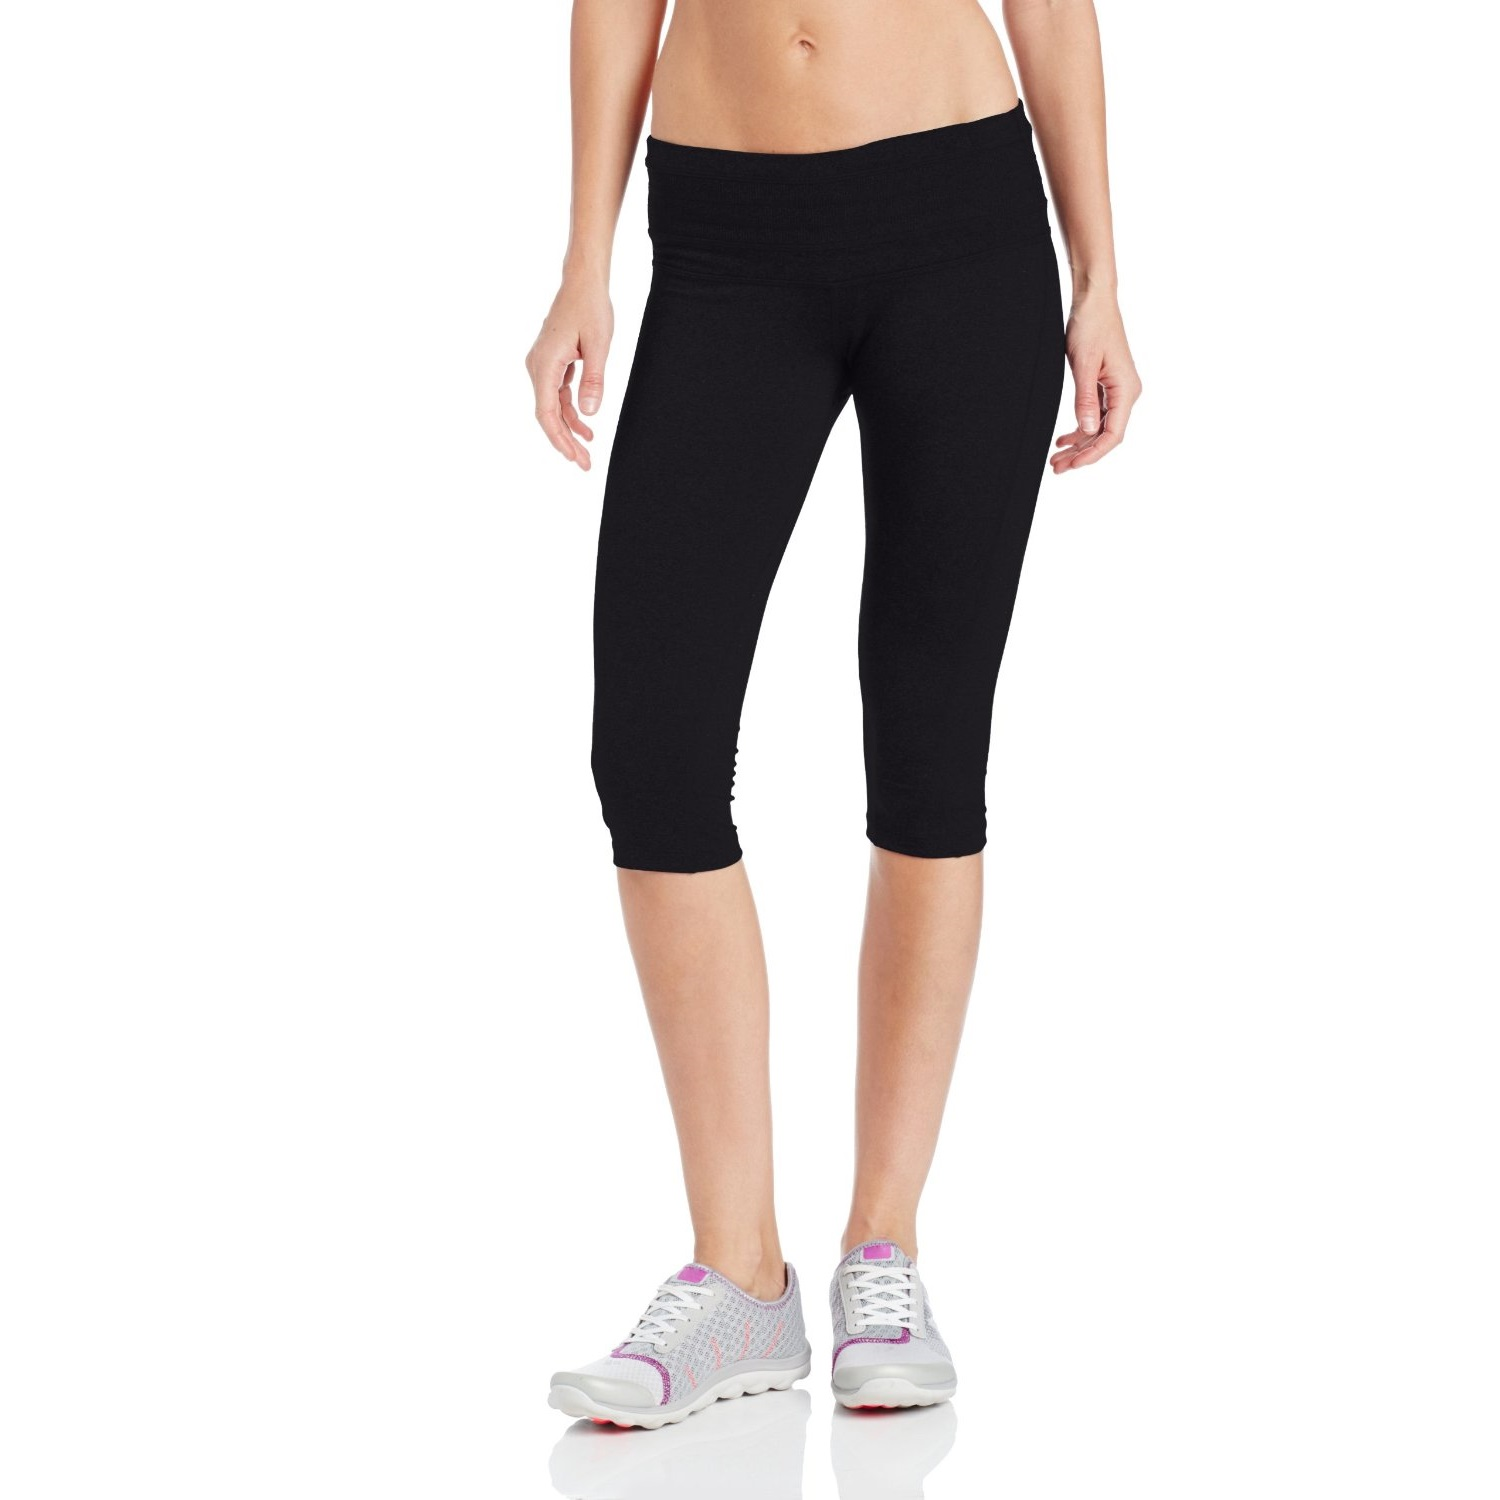 Yoga clothes online shopping